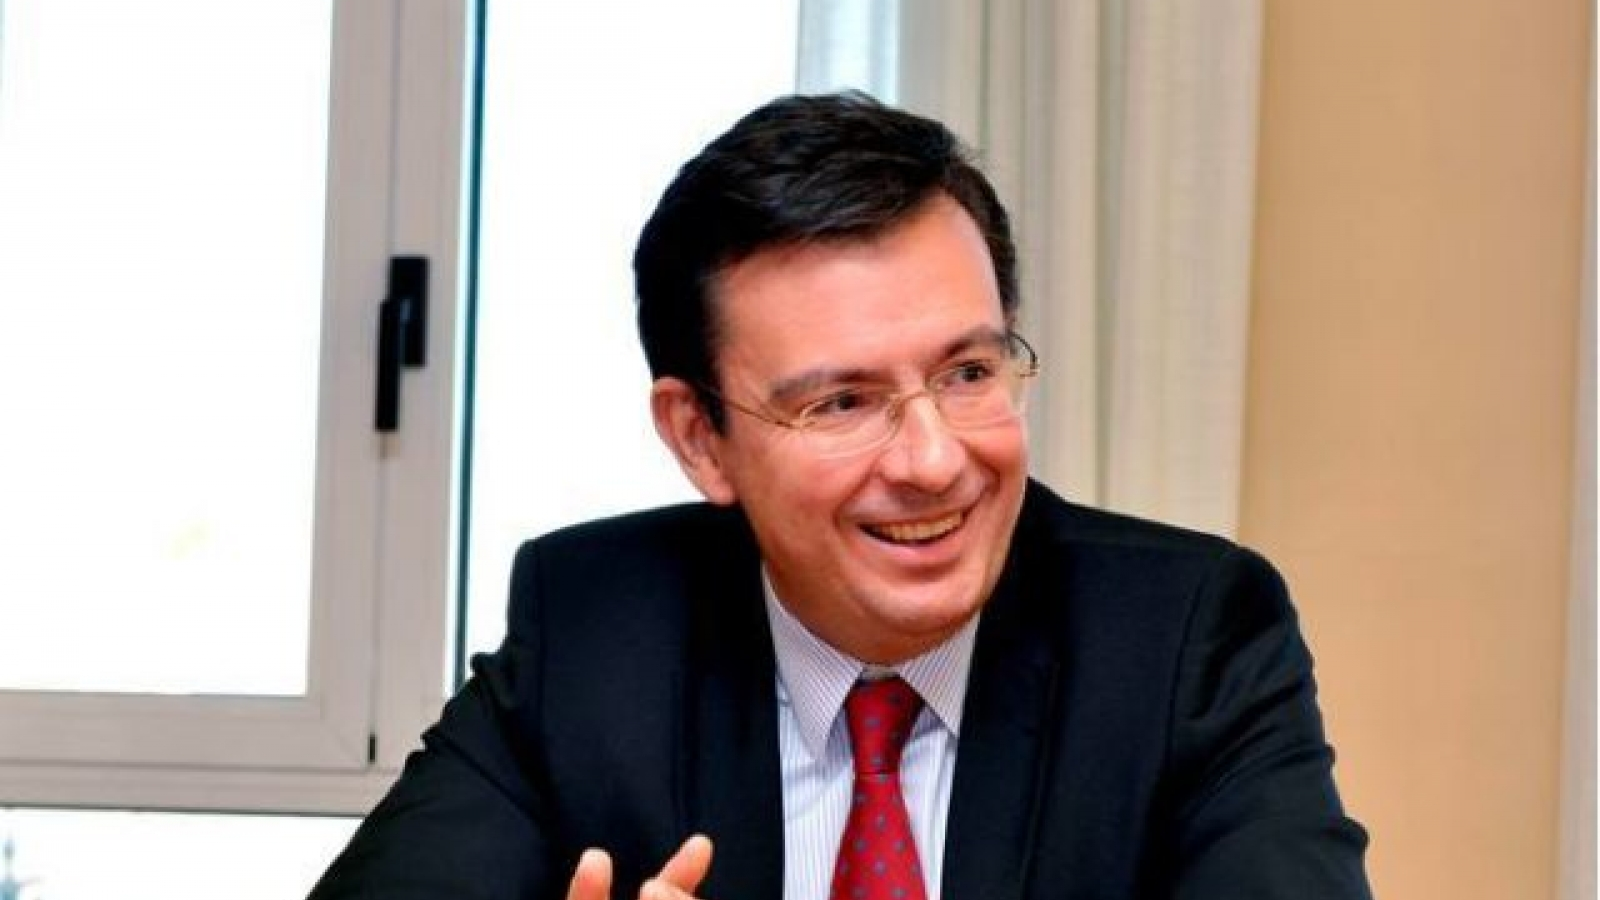 Roman Escolano, Vice-President of the European Investment Bank (EIB)